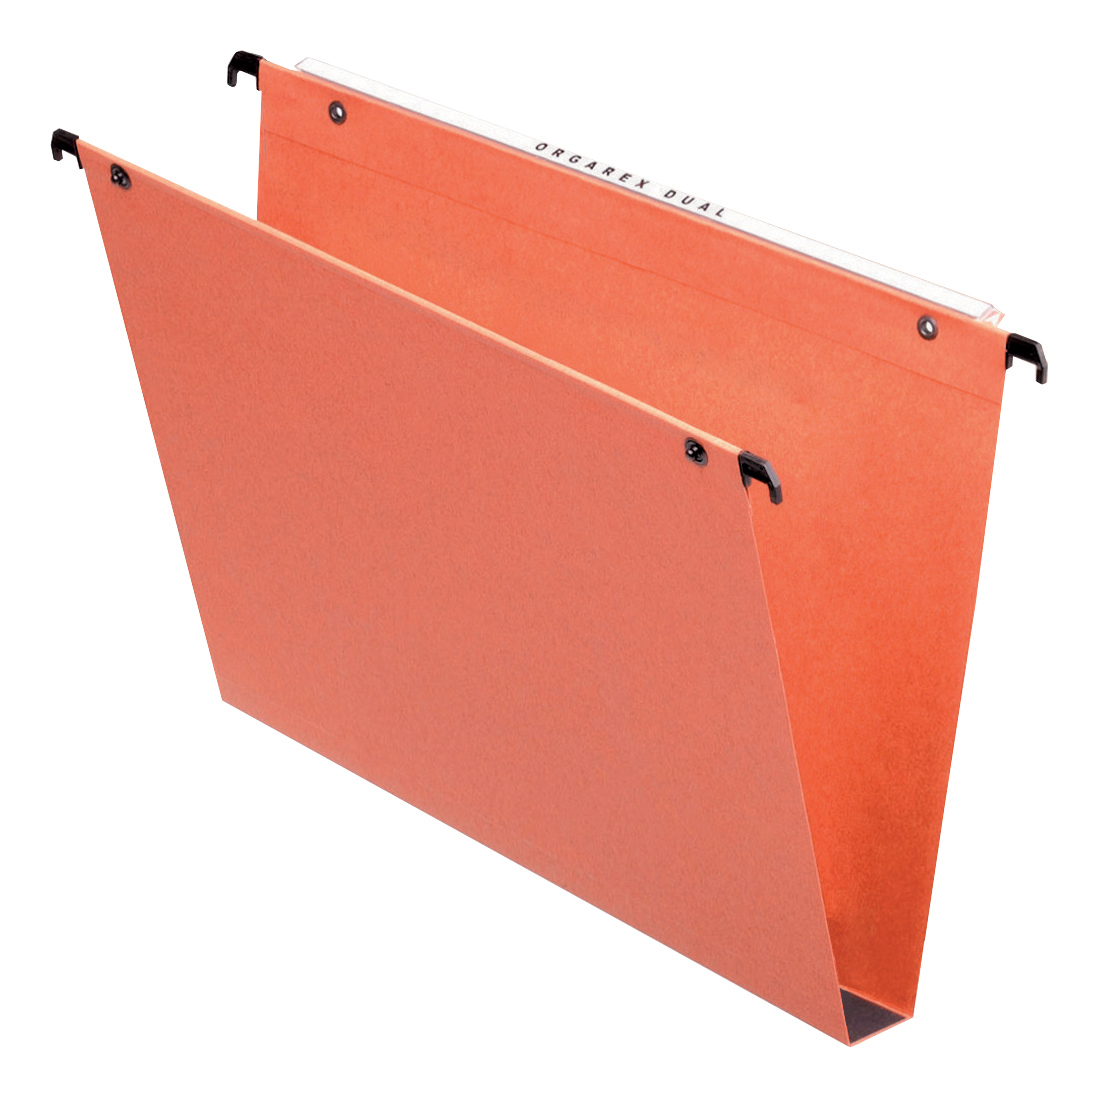 Hanging folders or accessories Esselte FSC Orgarex Suspension File Dual Linking Rcyc 30mm Wide-base 120gsm A4 Orange Ref 21633 Pack 25